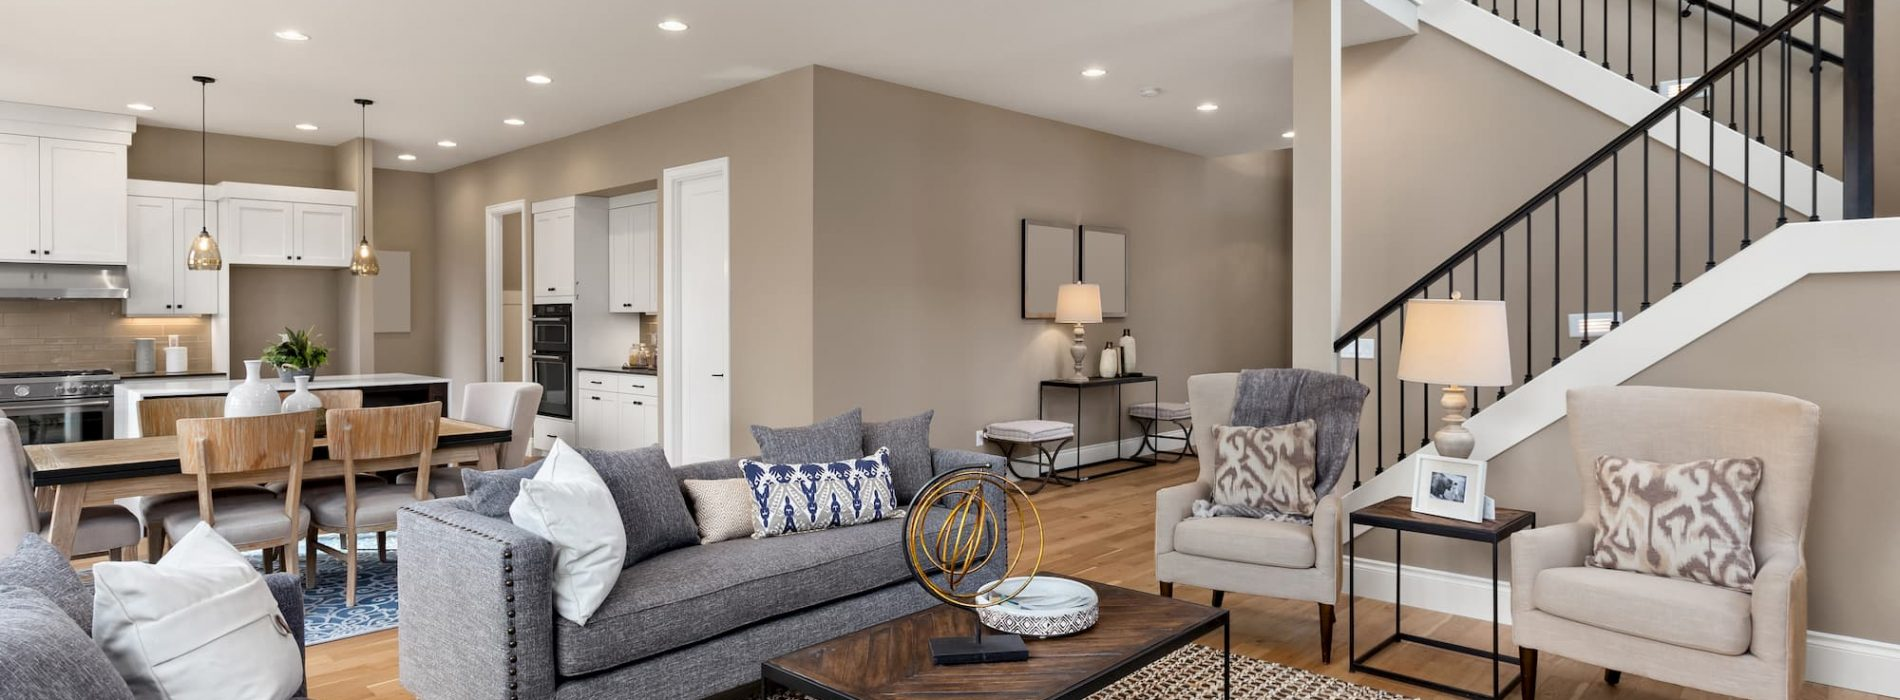 home renovation and remodeling in San Jose